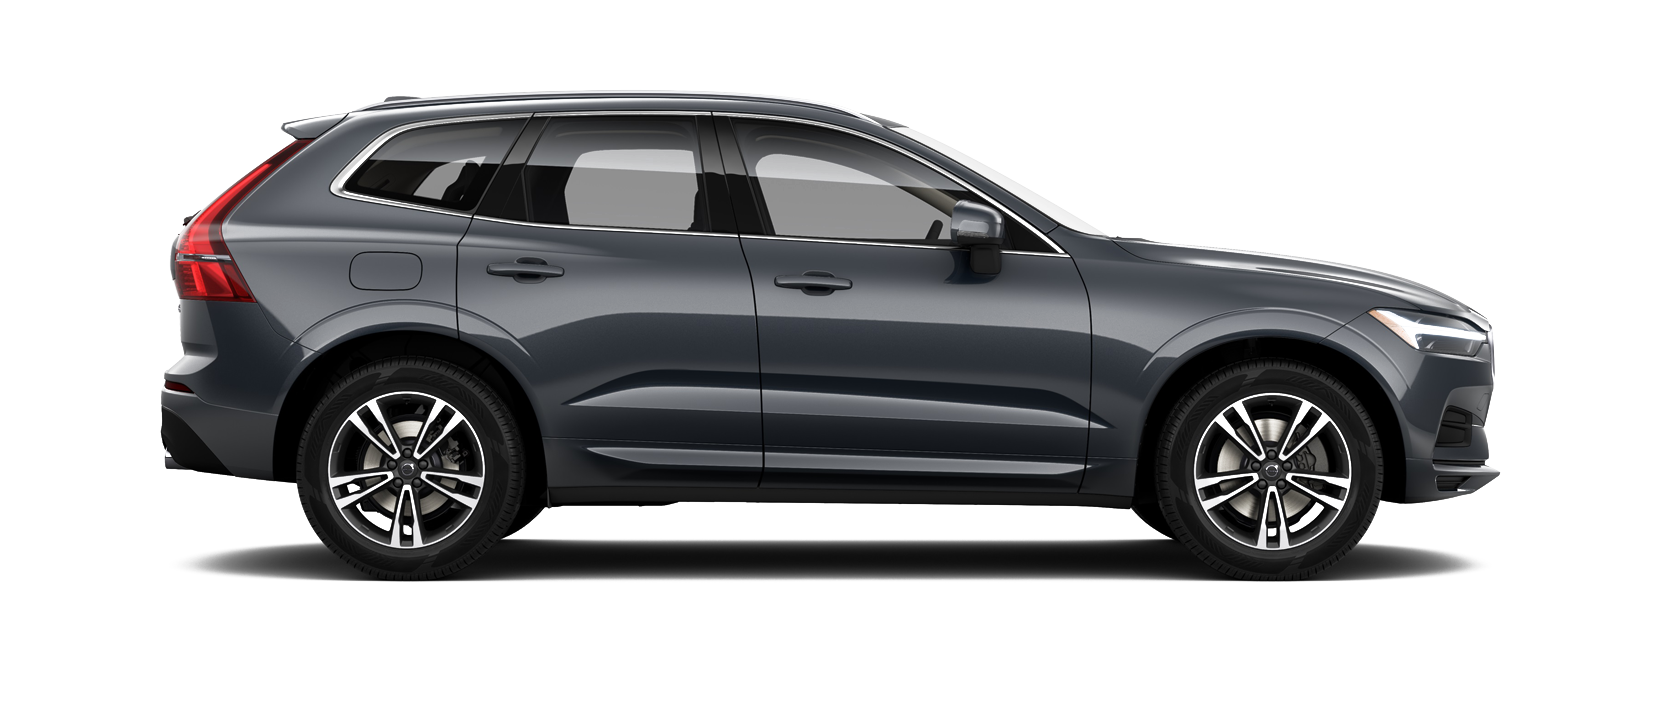 2019 Volvo XC60 T6 Momentum shown